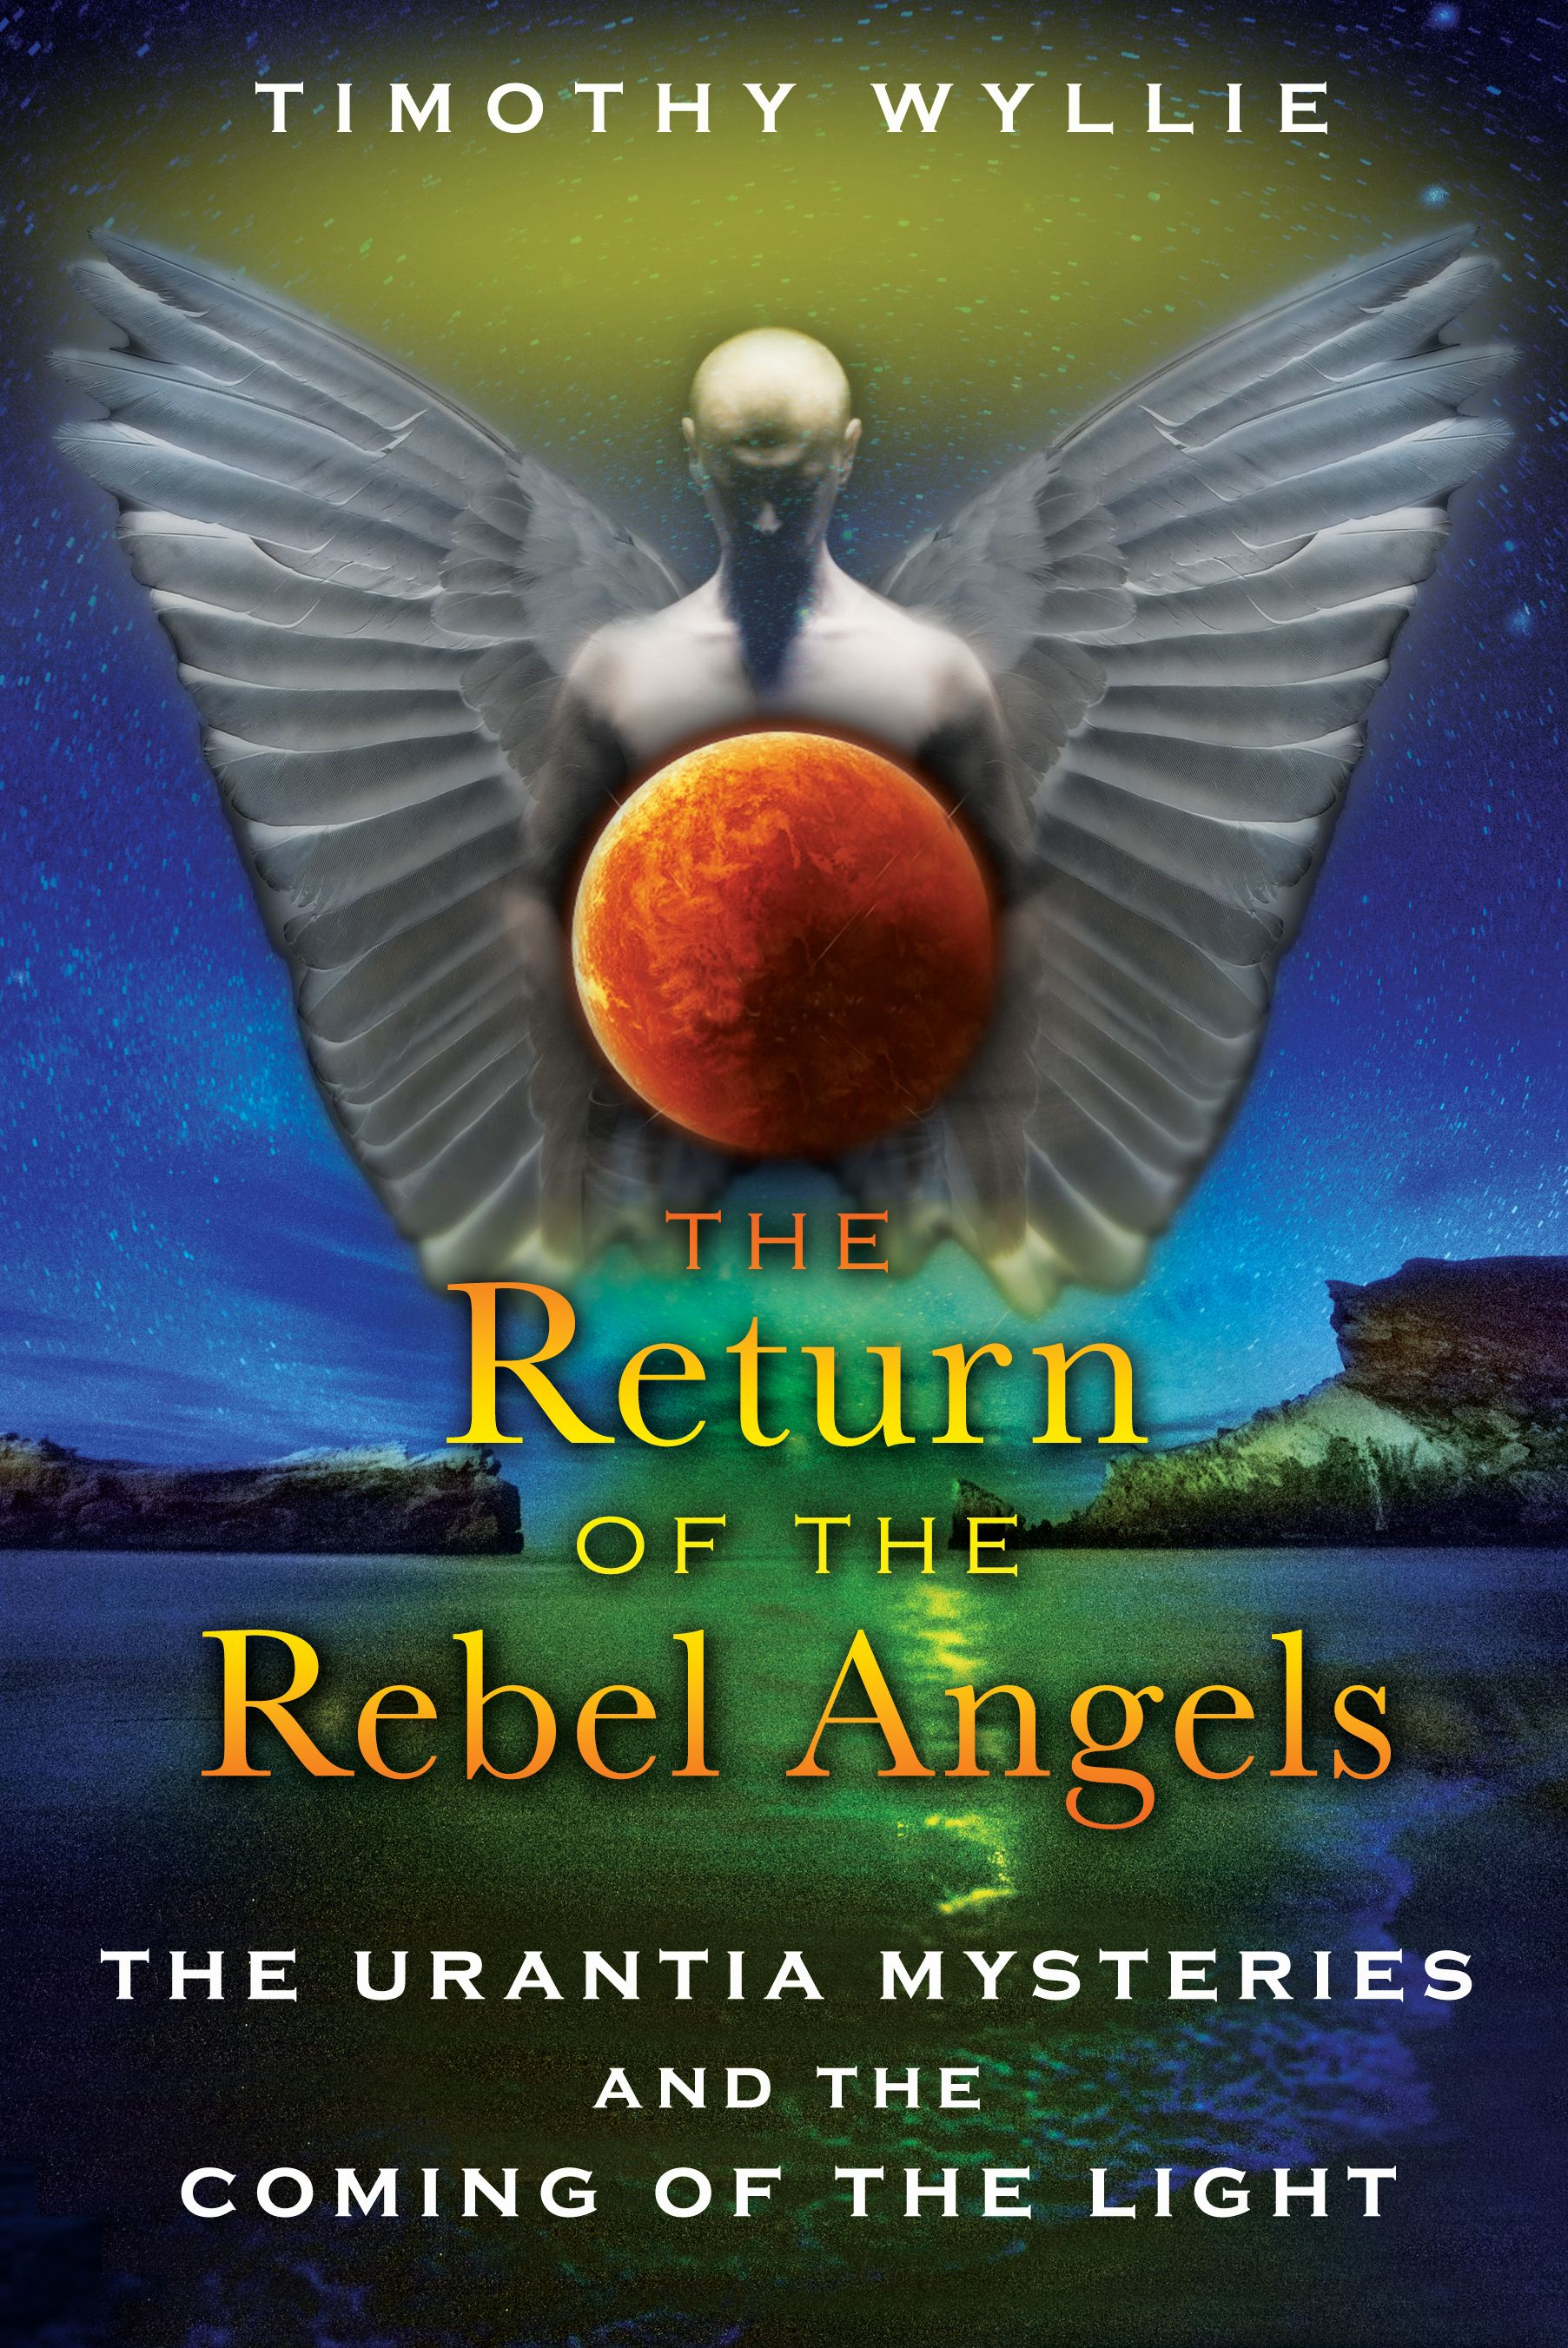 The return of the rebel angels 9781591431251 hr